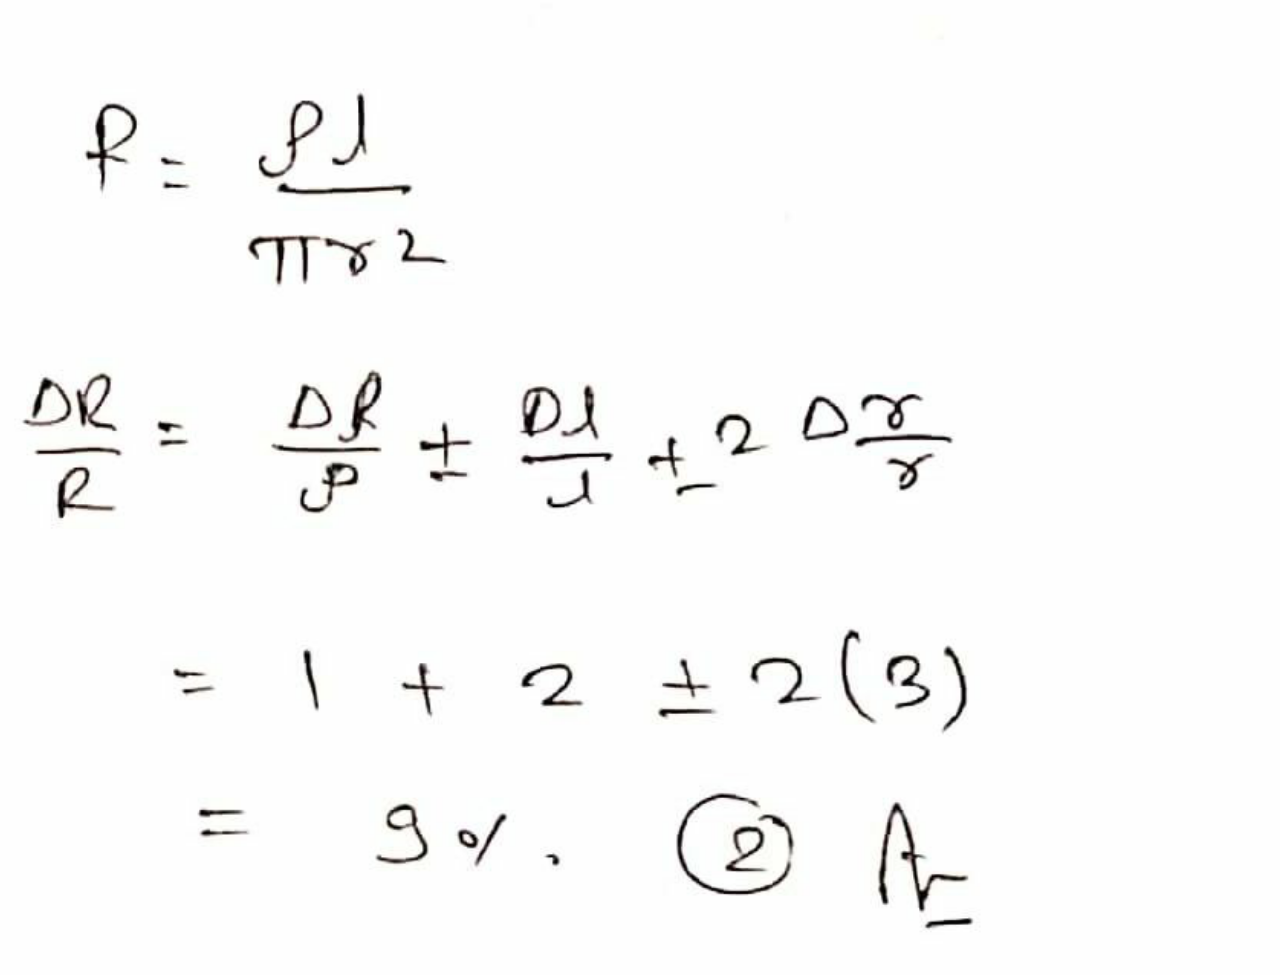 The resistance R of a wire is given by the relation R = Pl/πr2 percentage error in the measurement of p, I and r is 1%, 2% and 3 % respectively. Then the percentage error in the measurement of R is